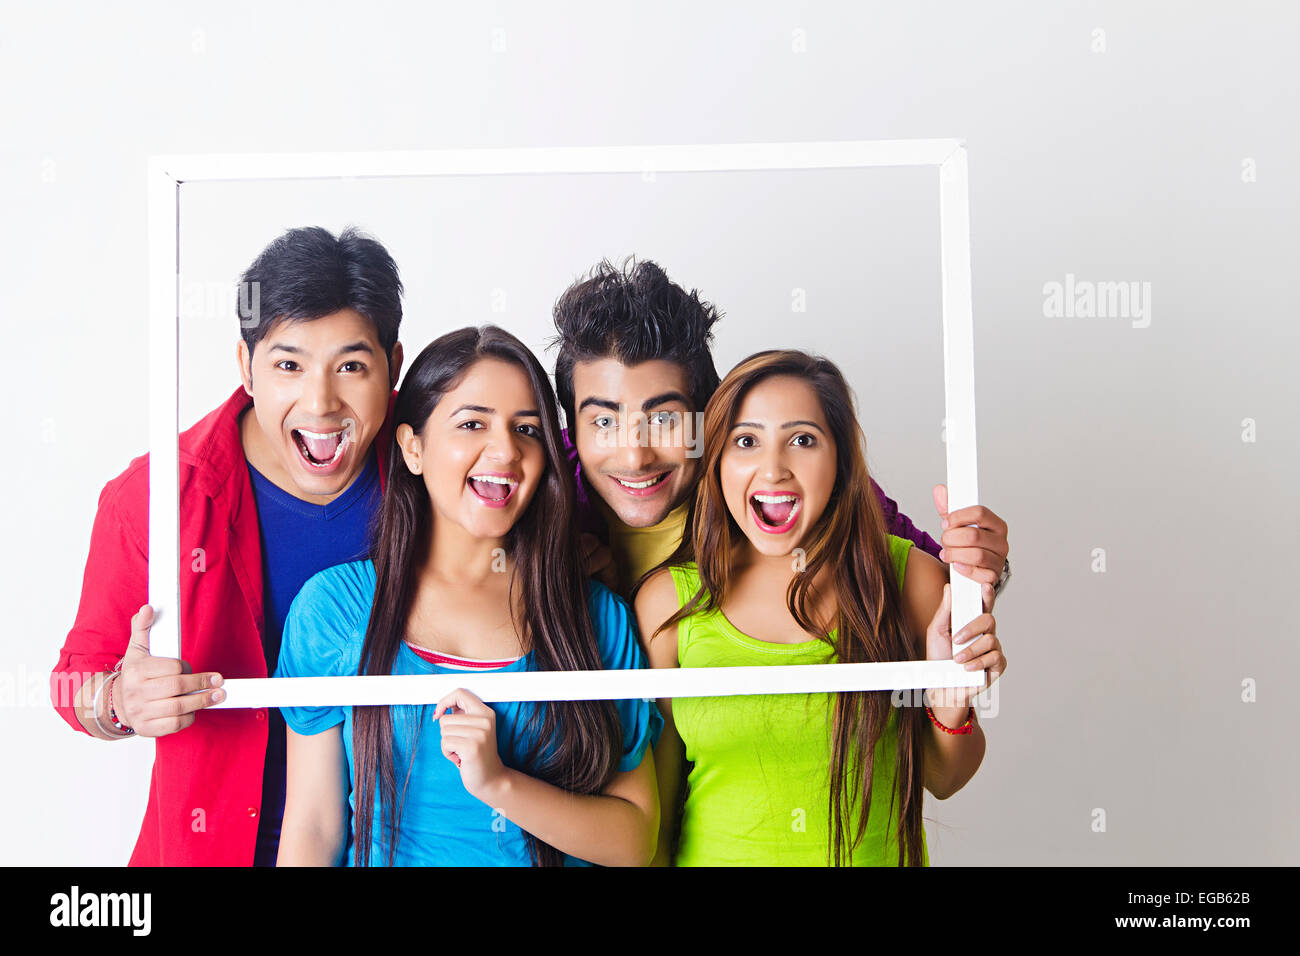 4 indian college friends Frame Photography Stock Photo: 78922211 - Alamy